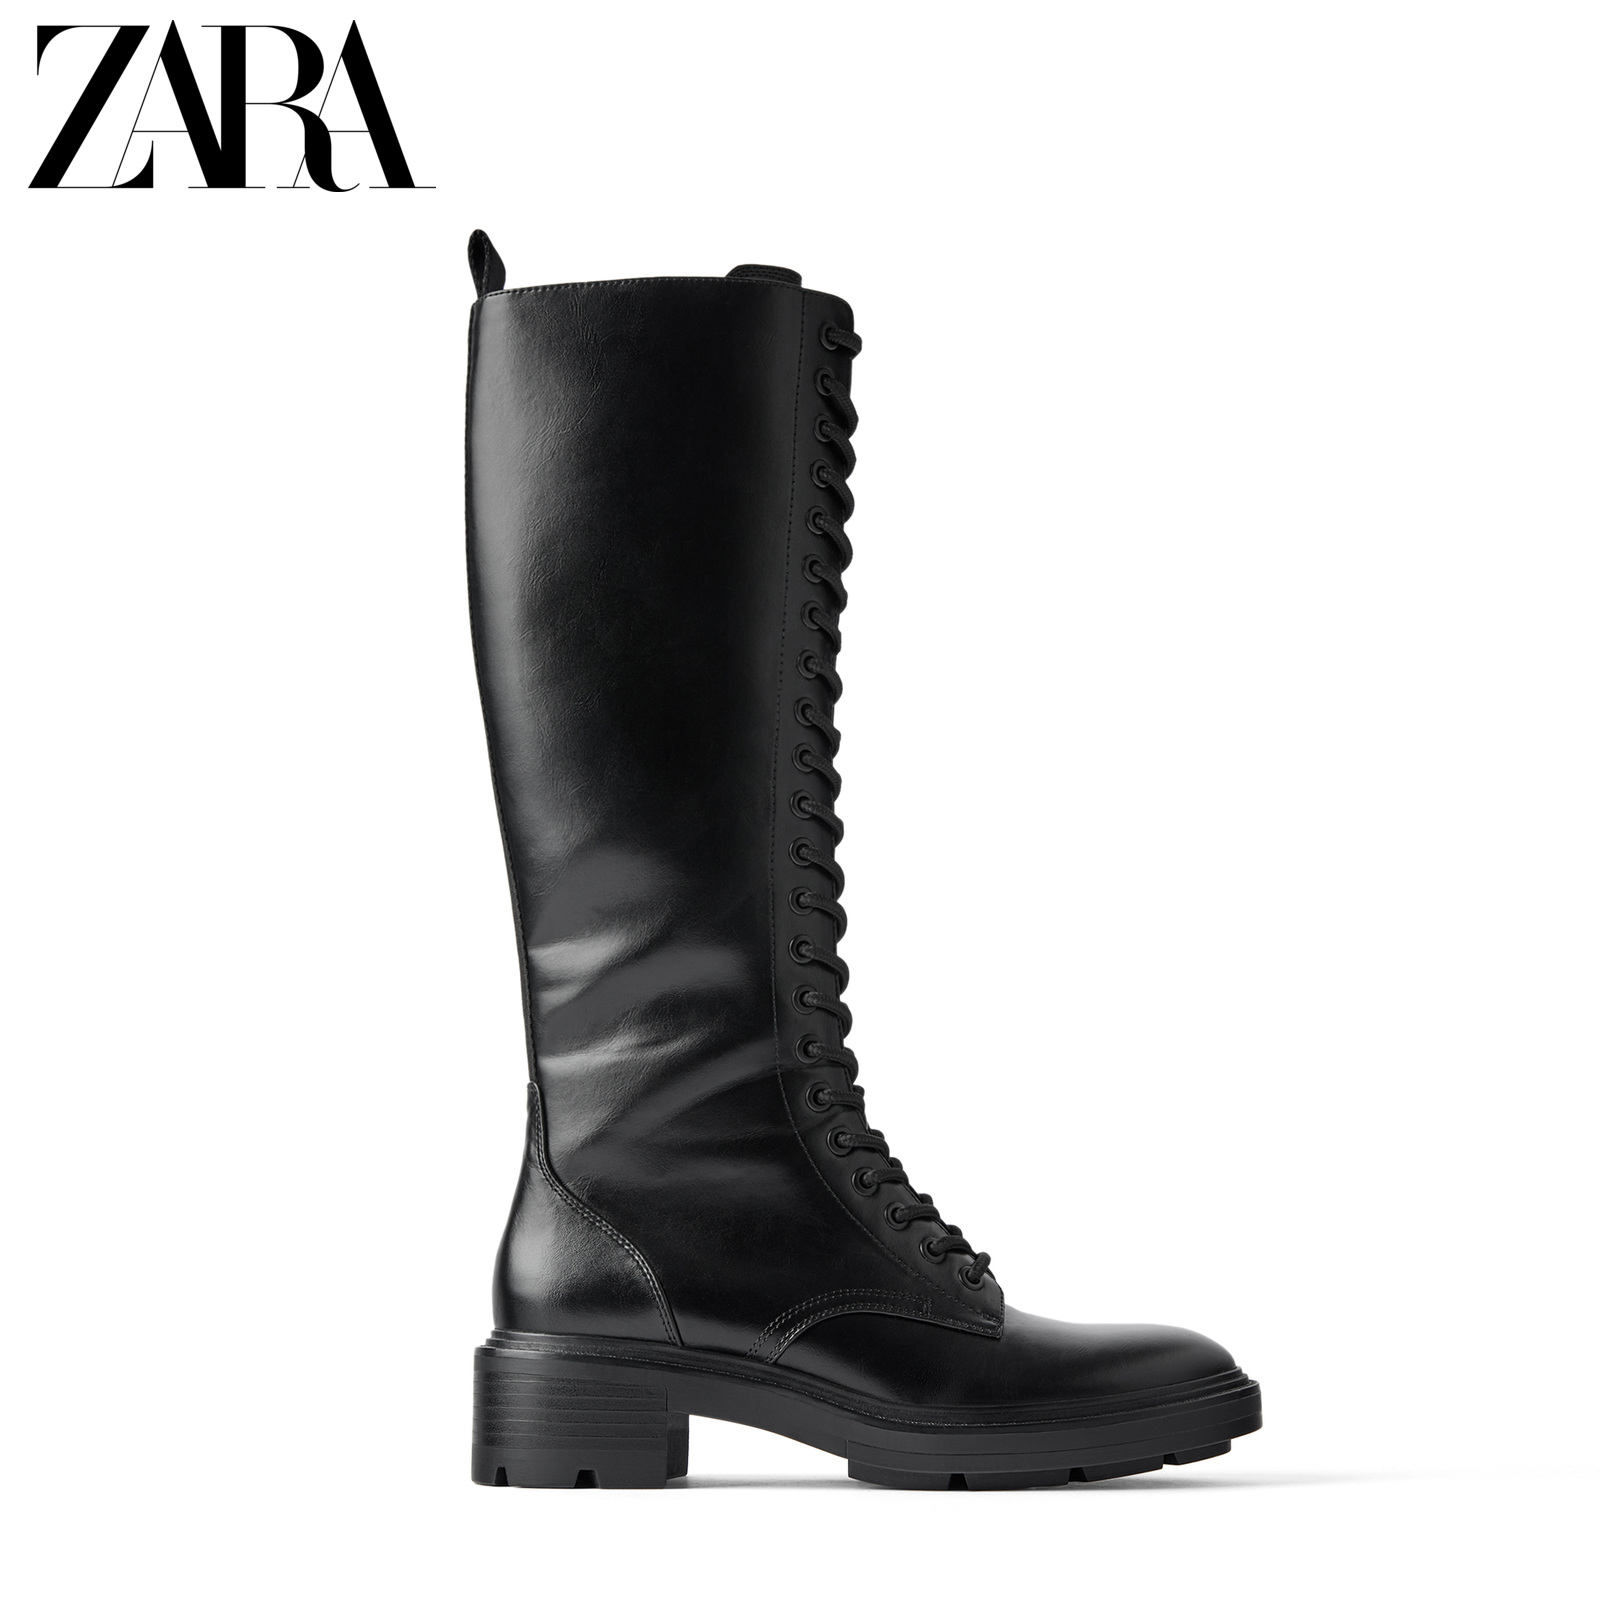 Zara new women's shoes black lace up flat riding boots Martin boots 16054001040